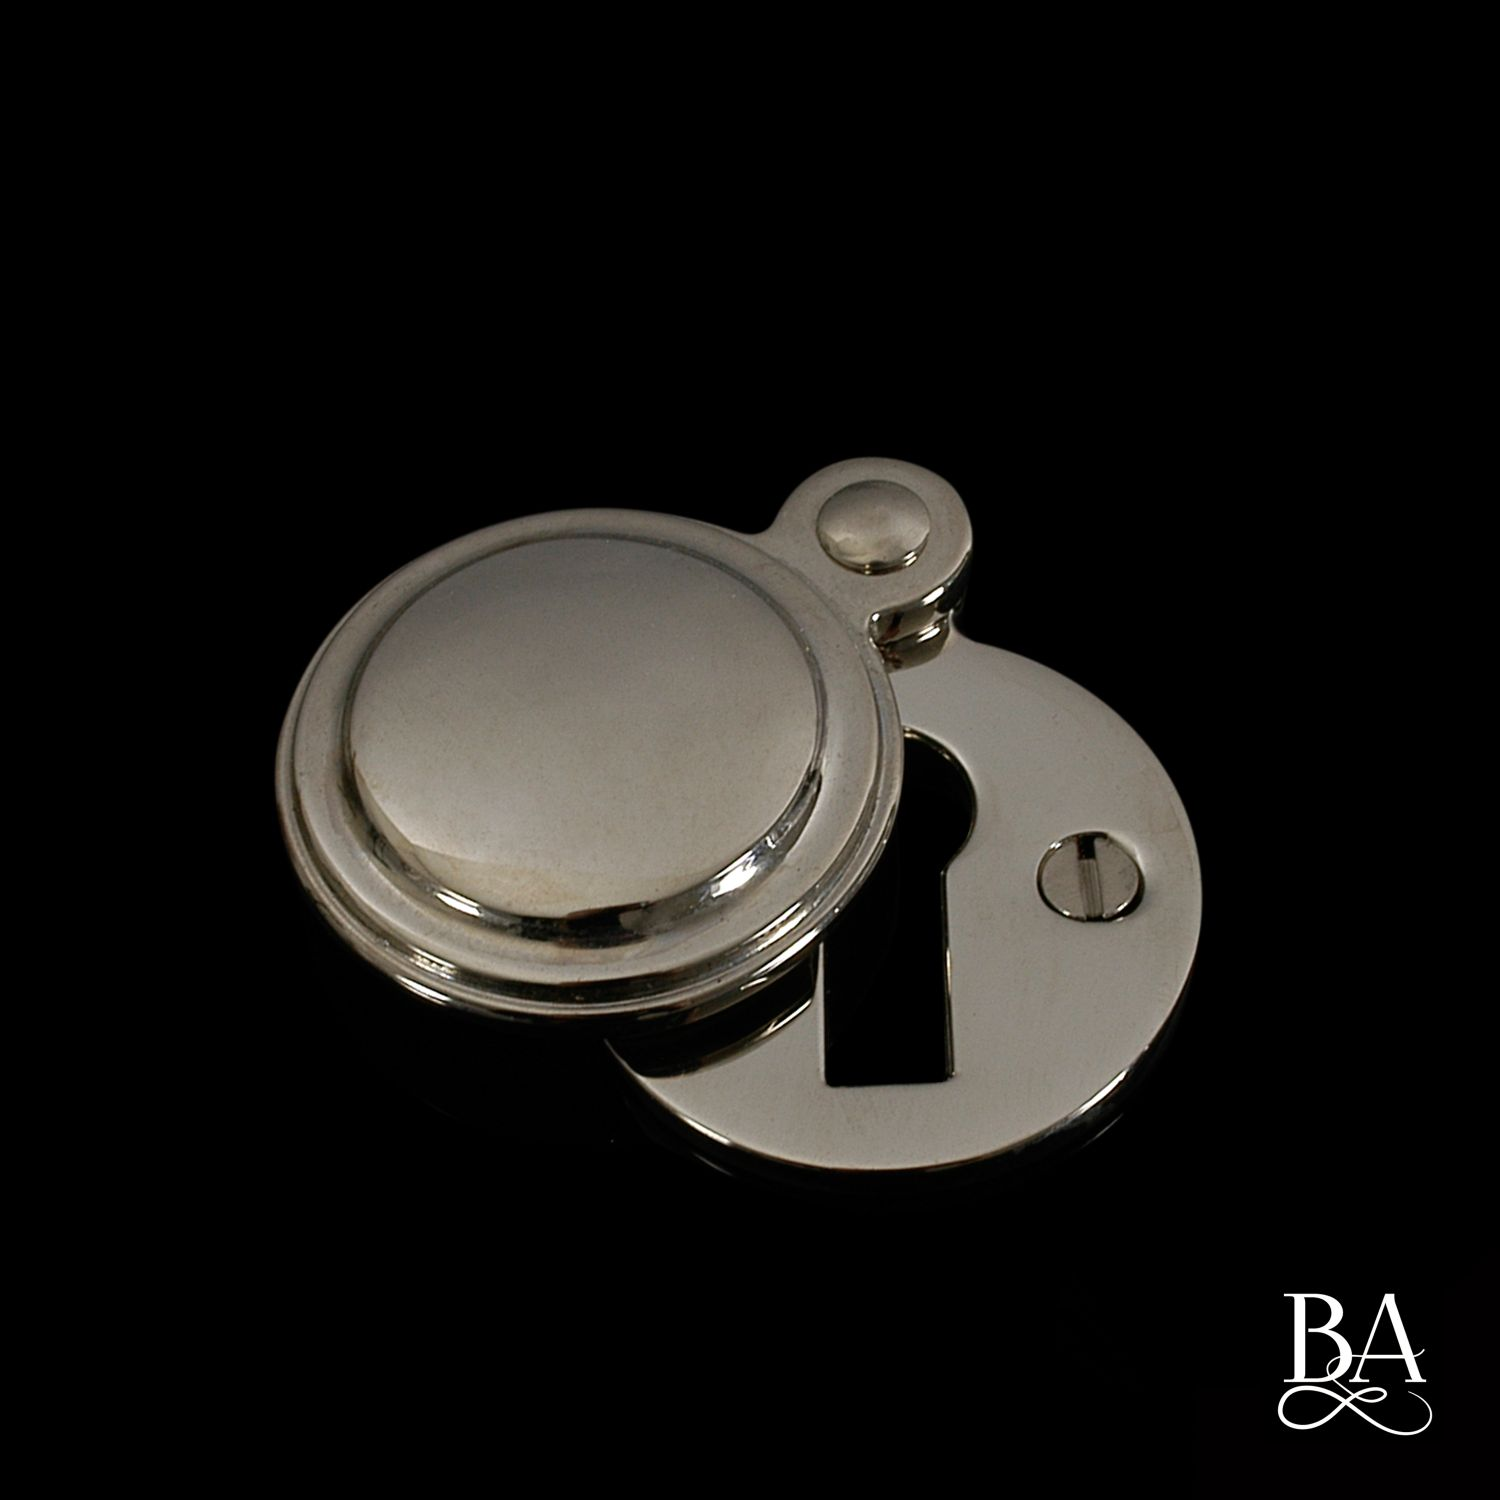 Constable Round Closed Escutcheon